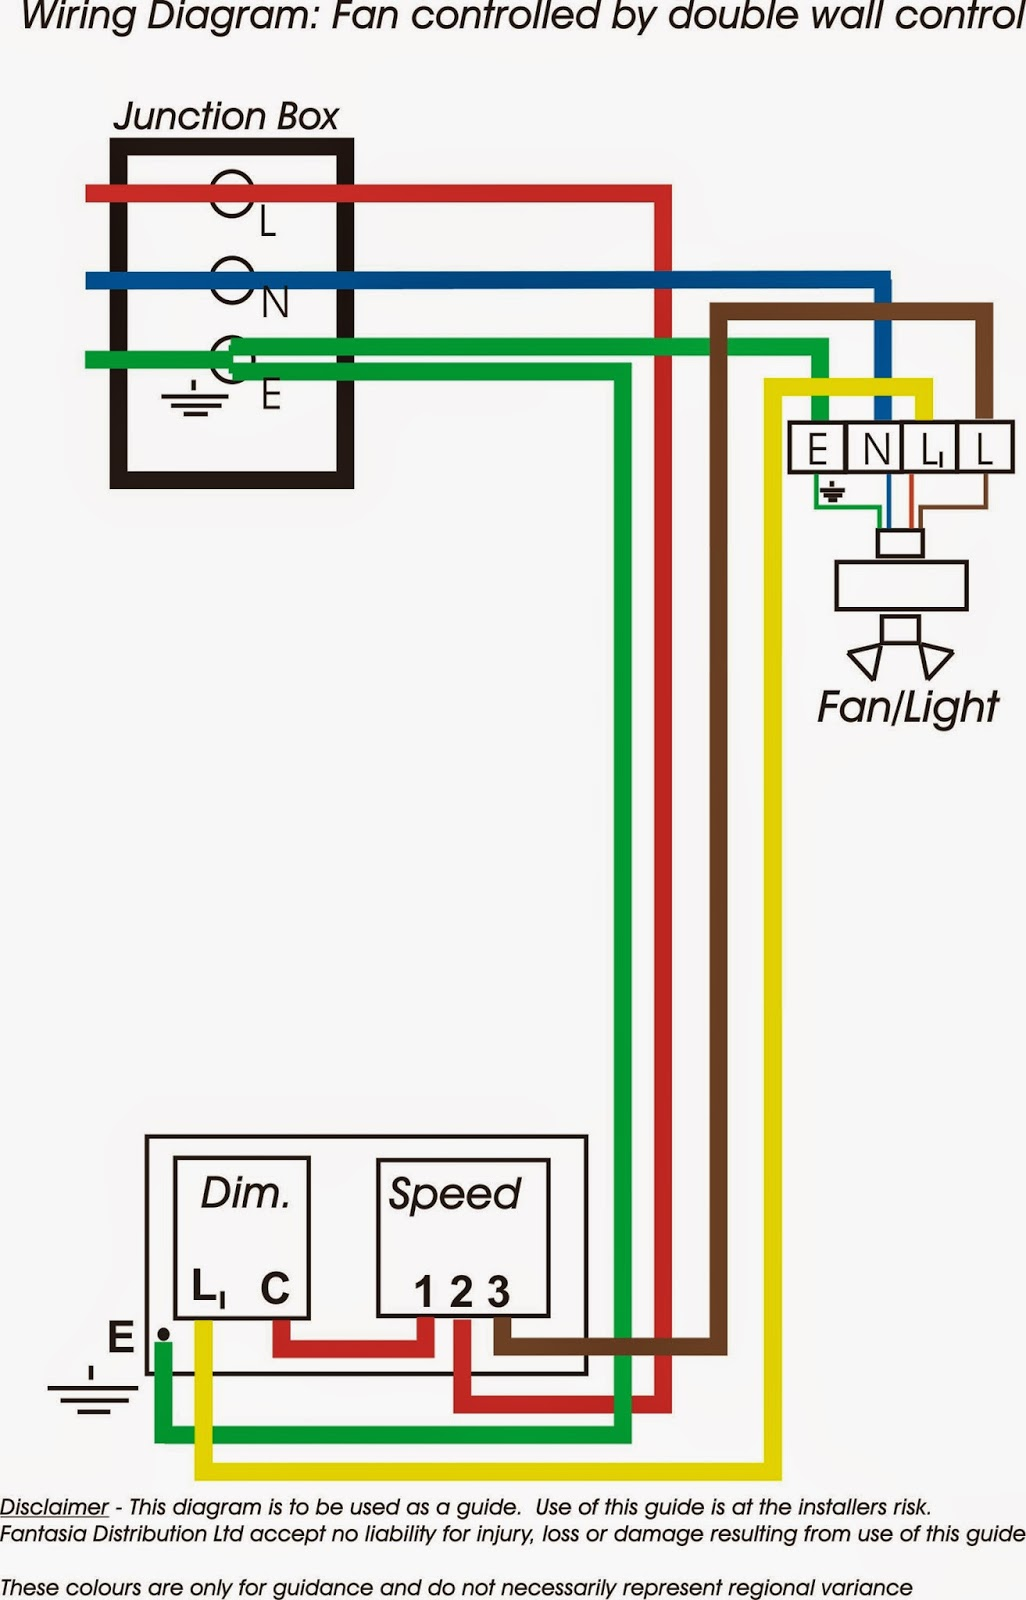 Electric Work     Wiring diagram